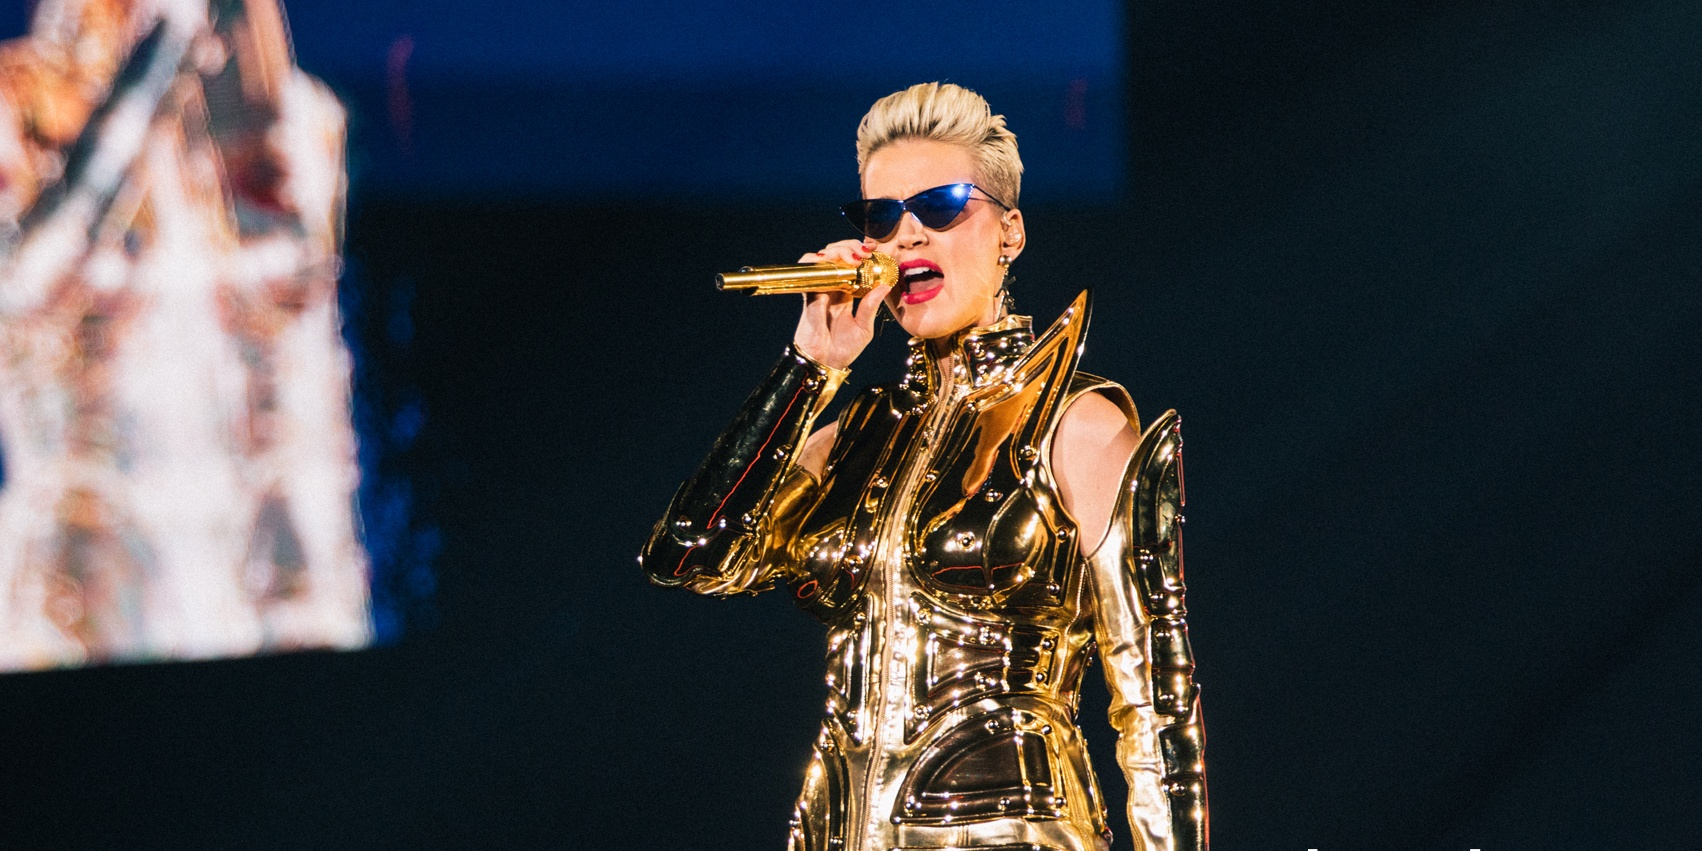 Katy Perry dazzles at Singapore stop of Witness: The Tour – gig report